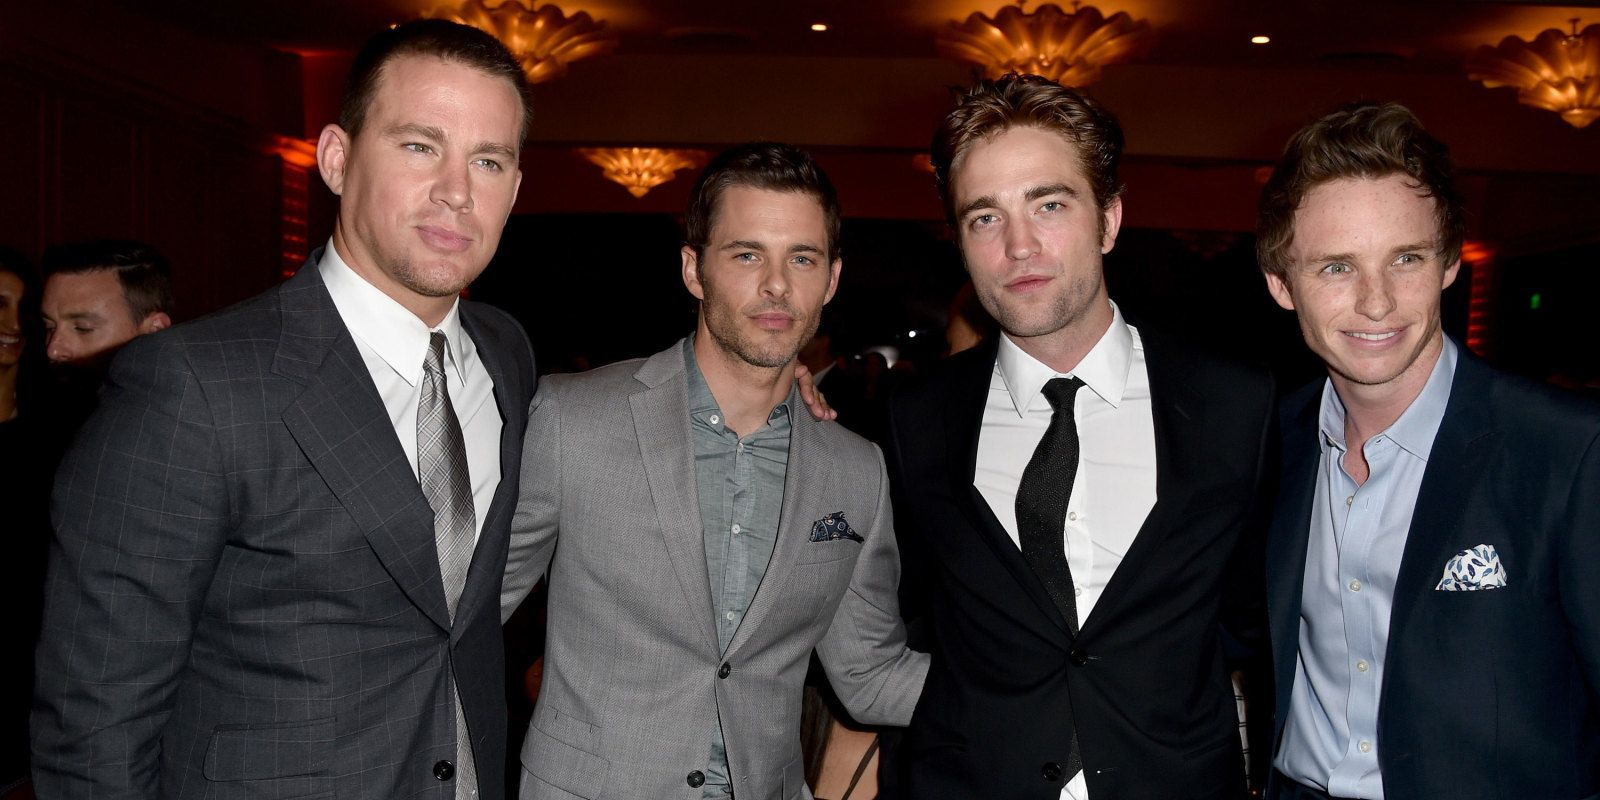 Four of my favorite guys in one place?  At the same time?  These are the things dreams are made of...  Channing Tatum, James Marsden, Robert Pattinson & Eddie Redmayne... Holey Moley!!!!!!! <3